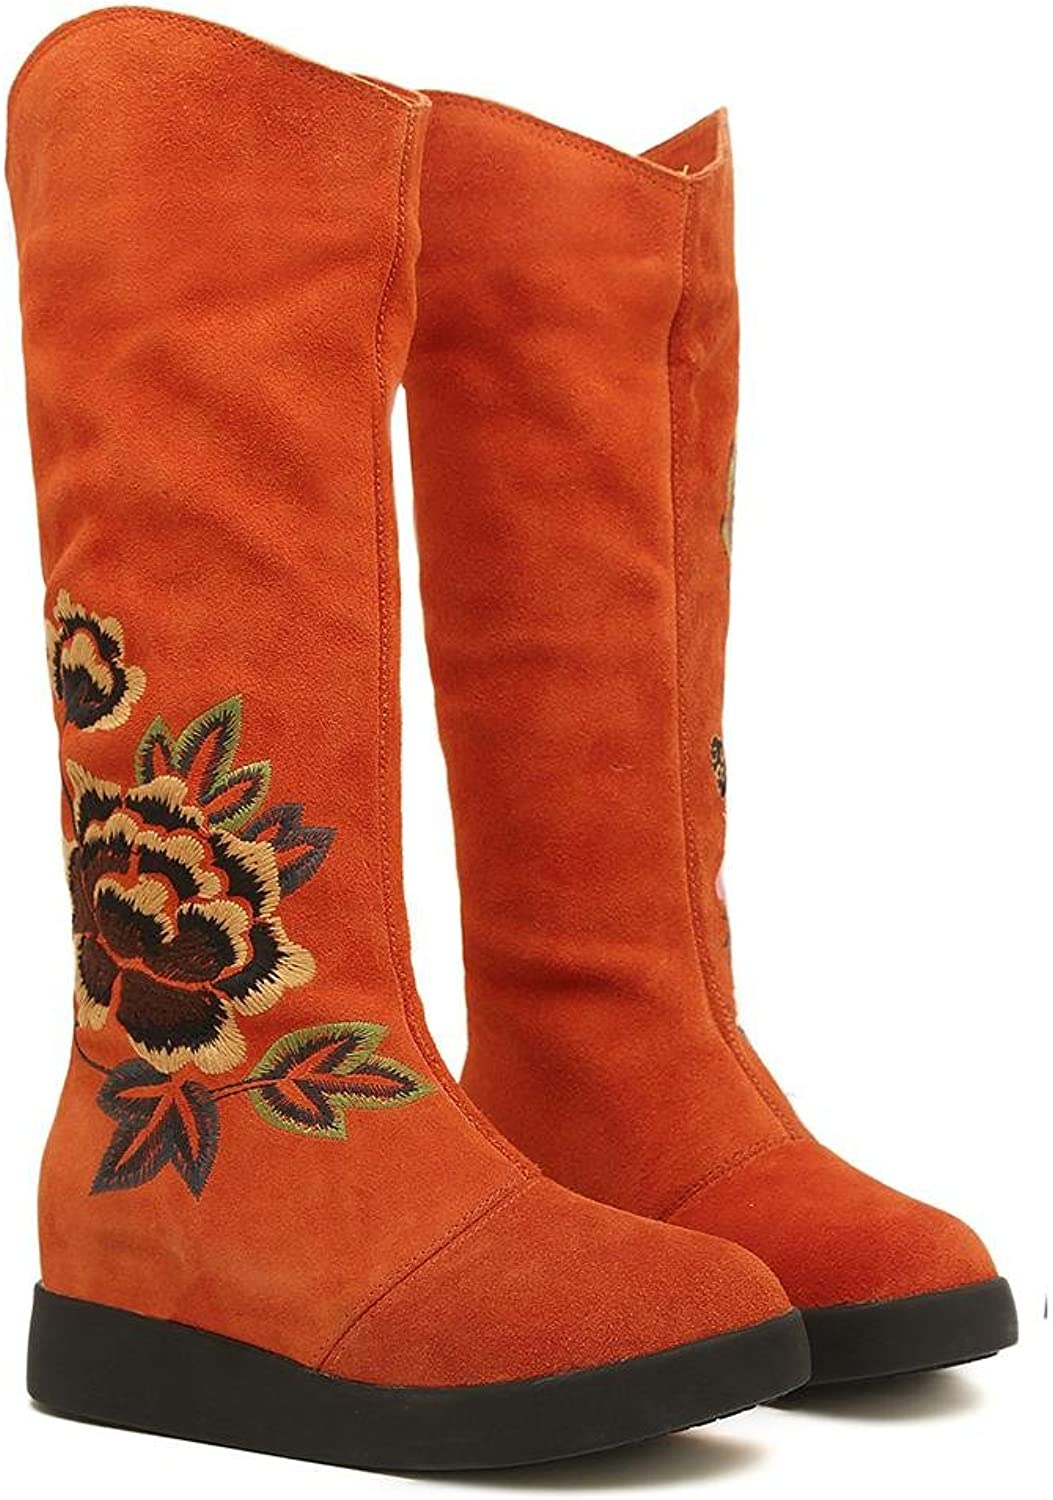 XUANshoes PPLadies Autumn and Winter Embroidered Female Boots Fashion Boots Keep Warm Snow Boots Gaotong Cotton shoes